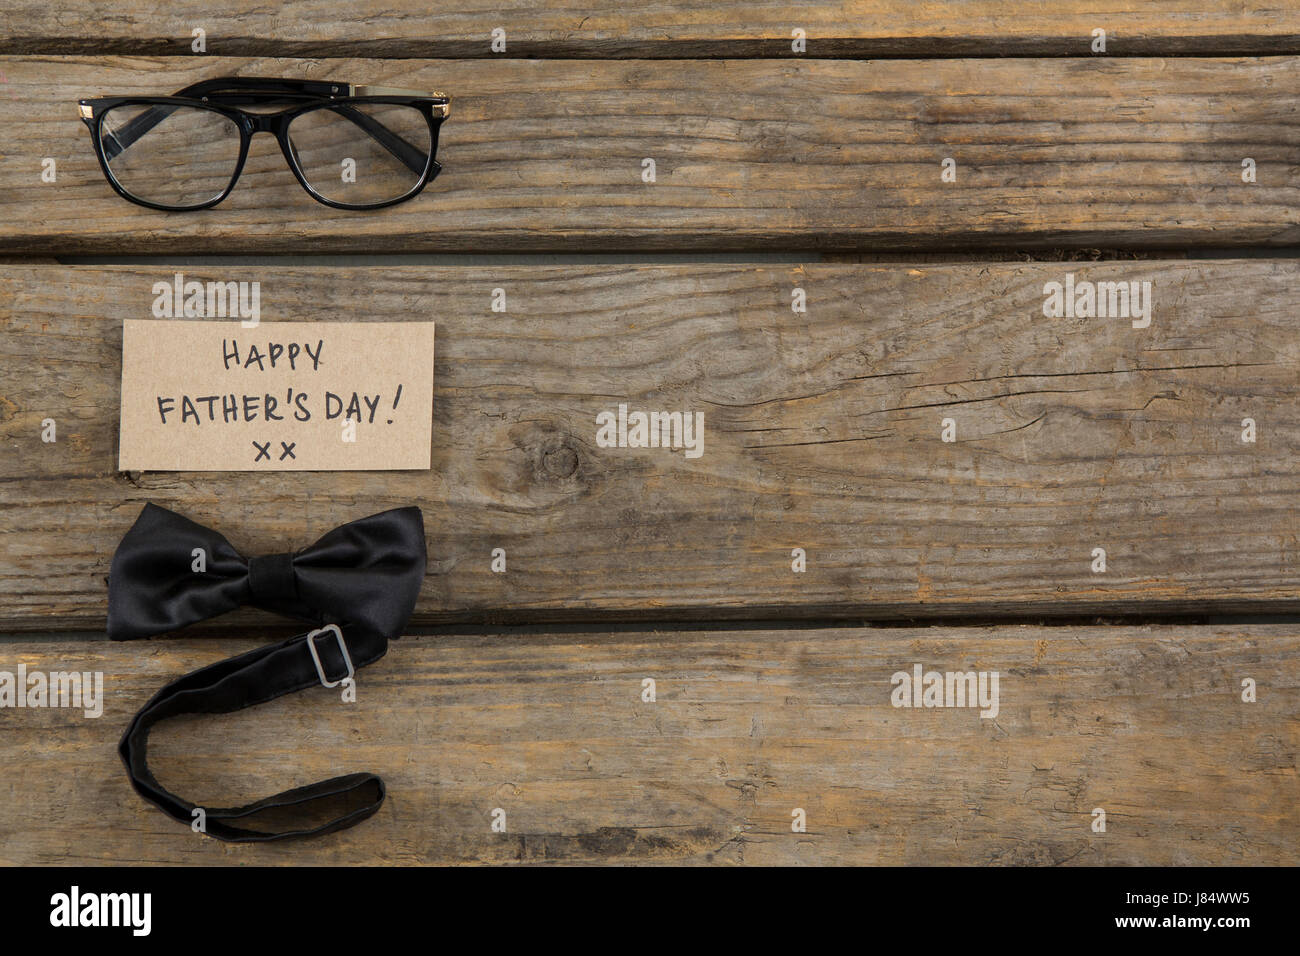 Overhead view of happy fathers day text by eyeglasses and bowtie on wooden table - Stock Image